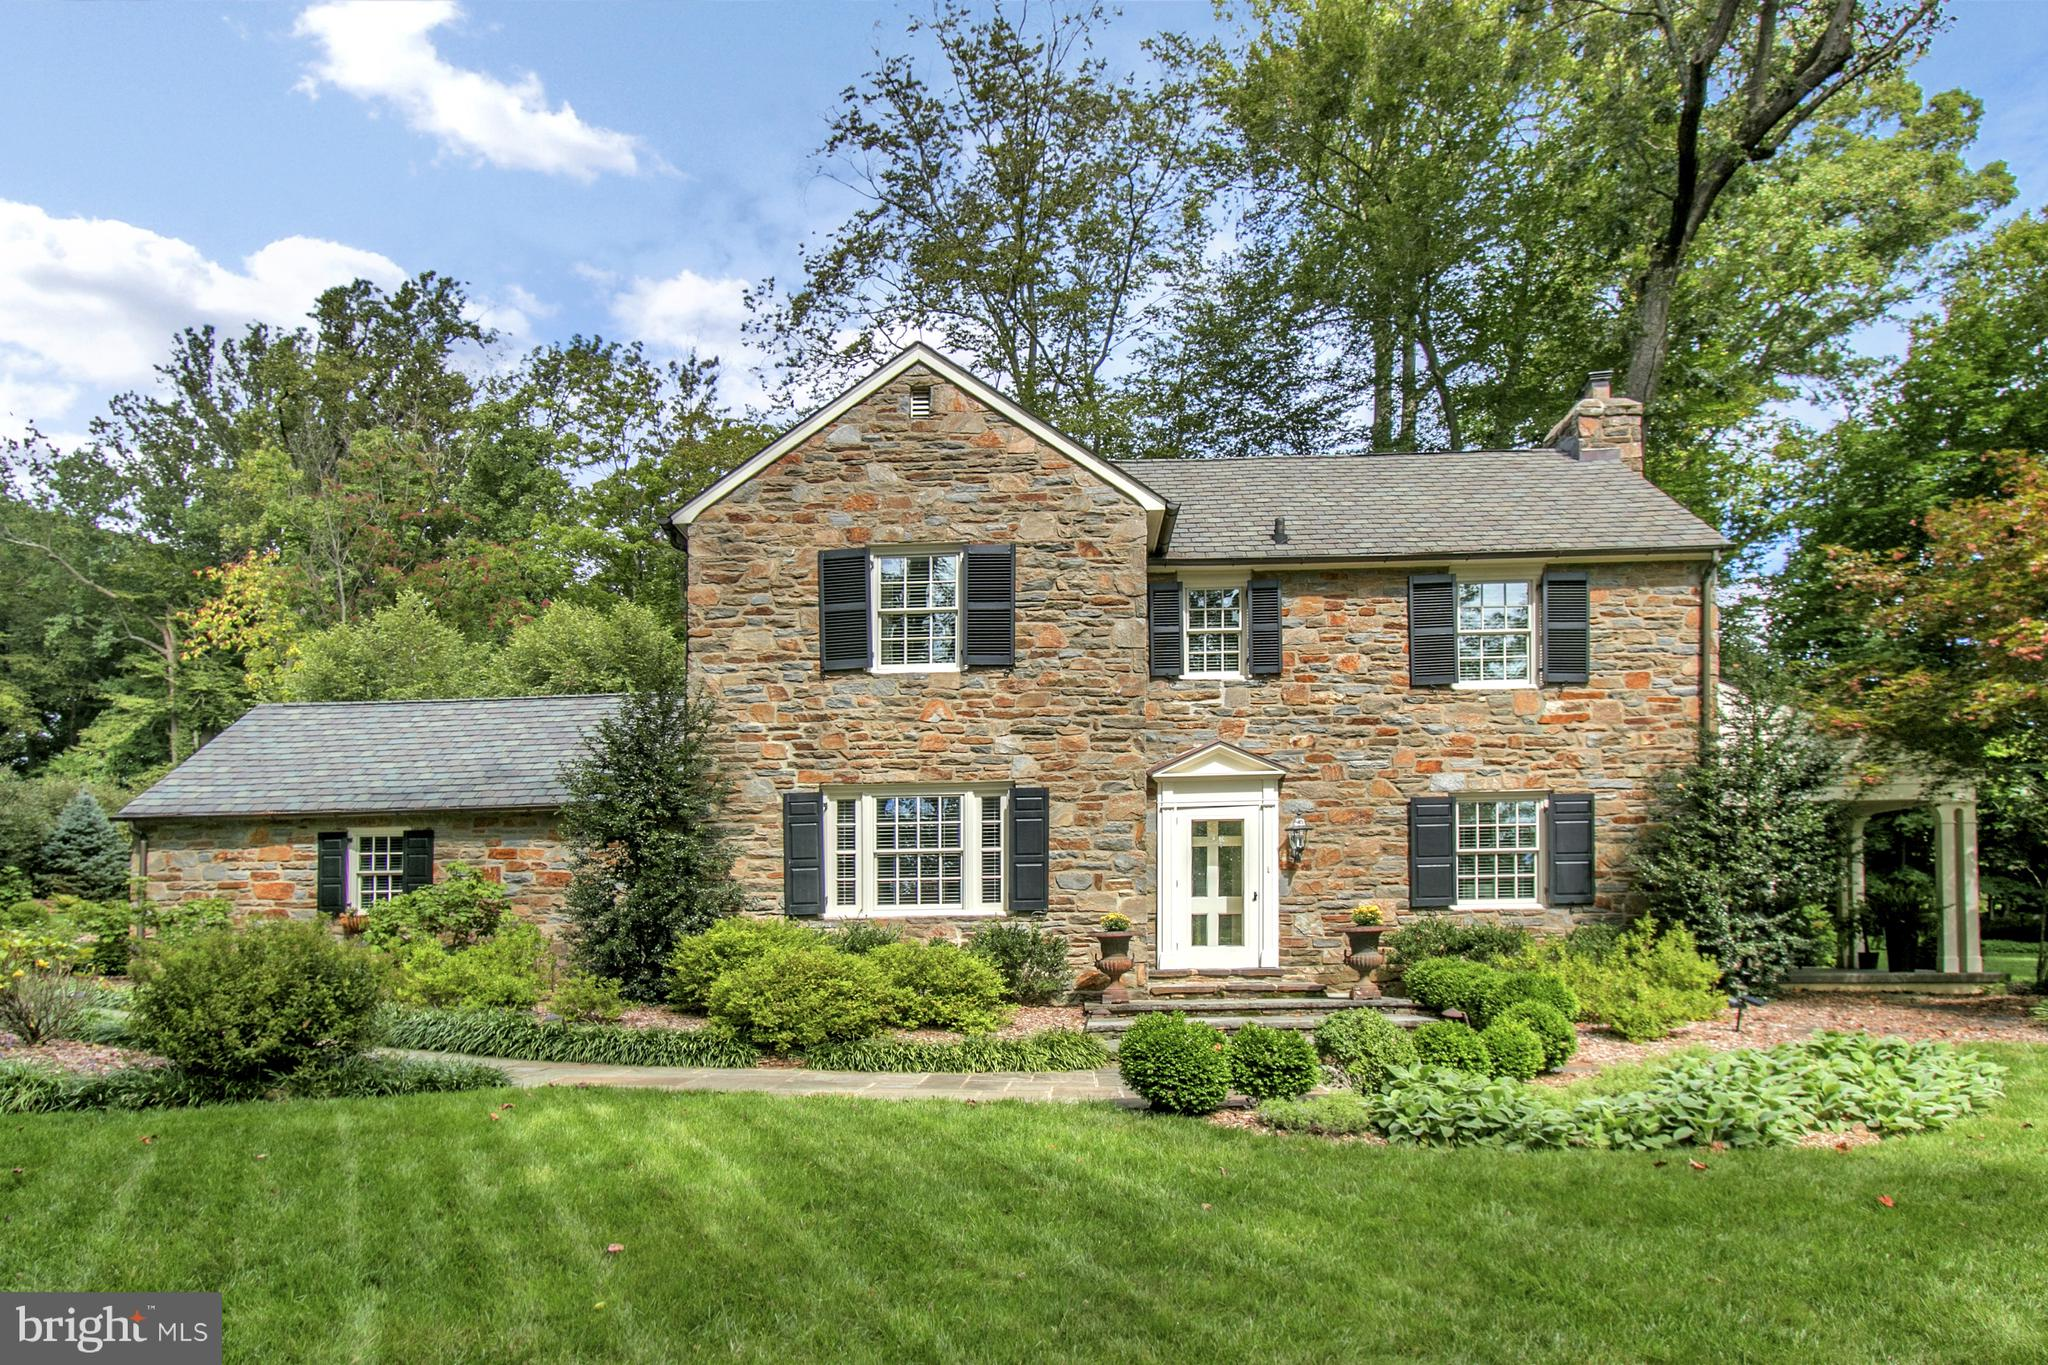 300 KENNETT PIKE, CHADDS FORD, PA 19317